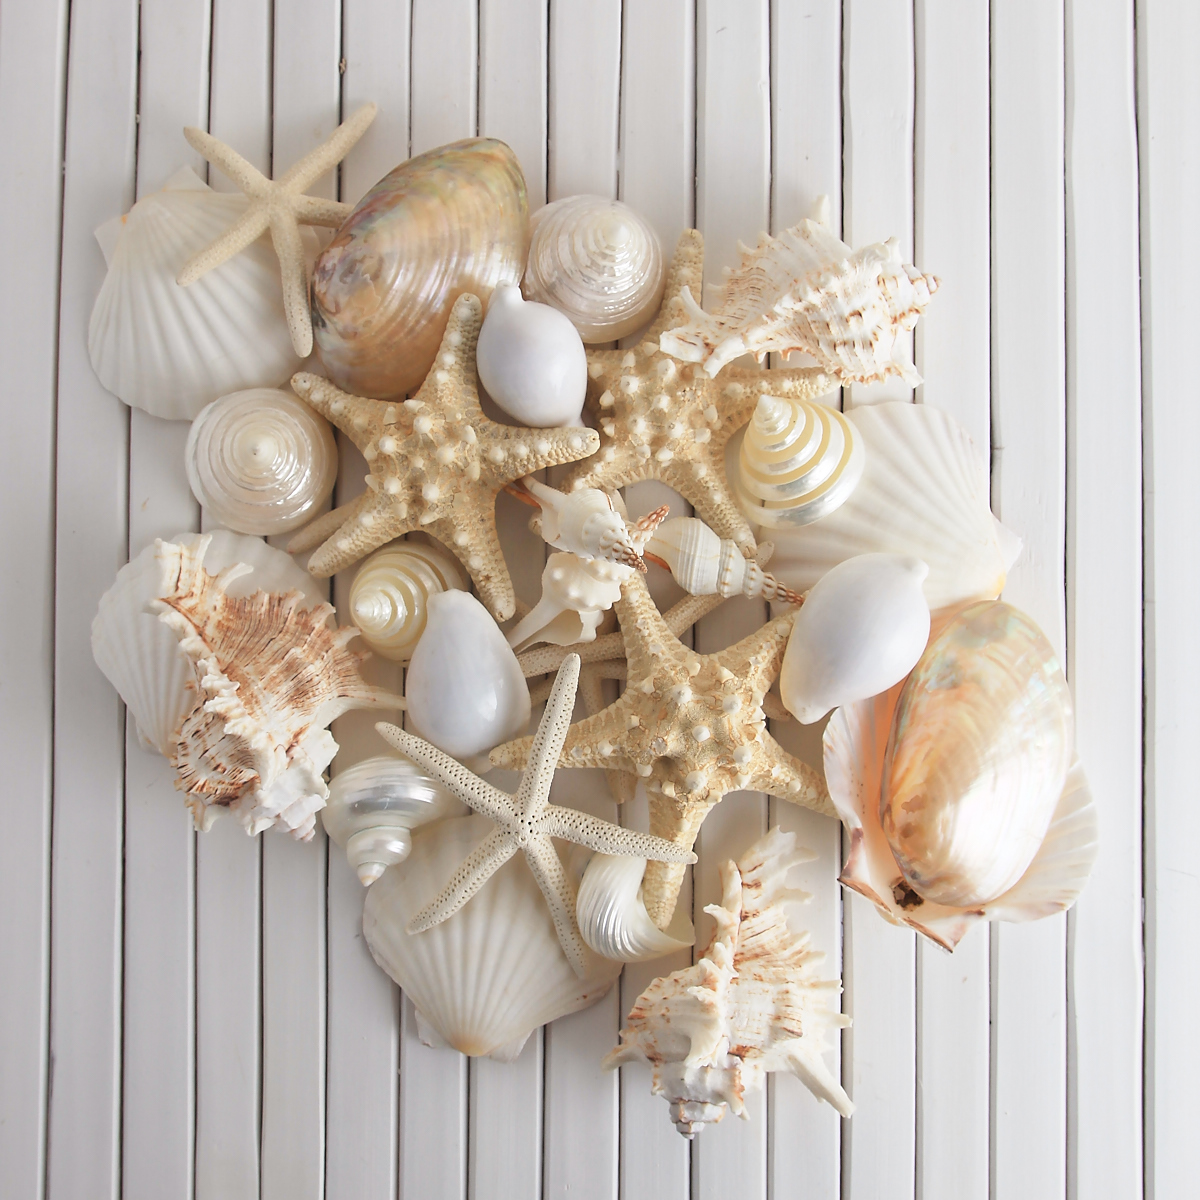 MIXED LARGE SHELLS 1.1 KILO BULK PACK - SUPER SPECIAL